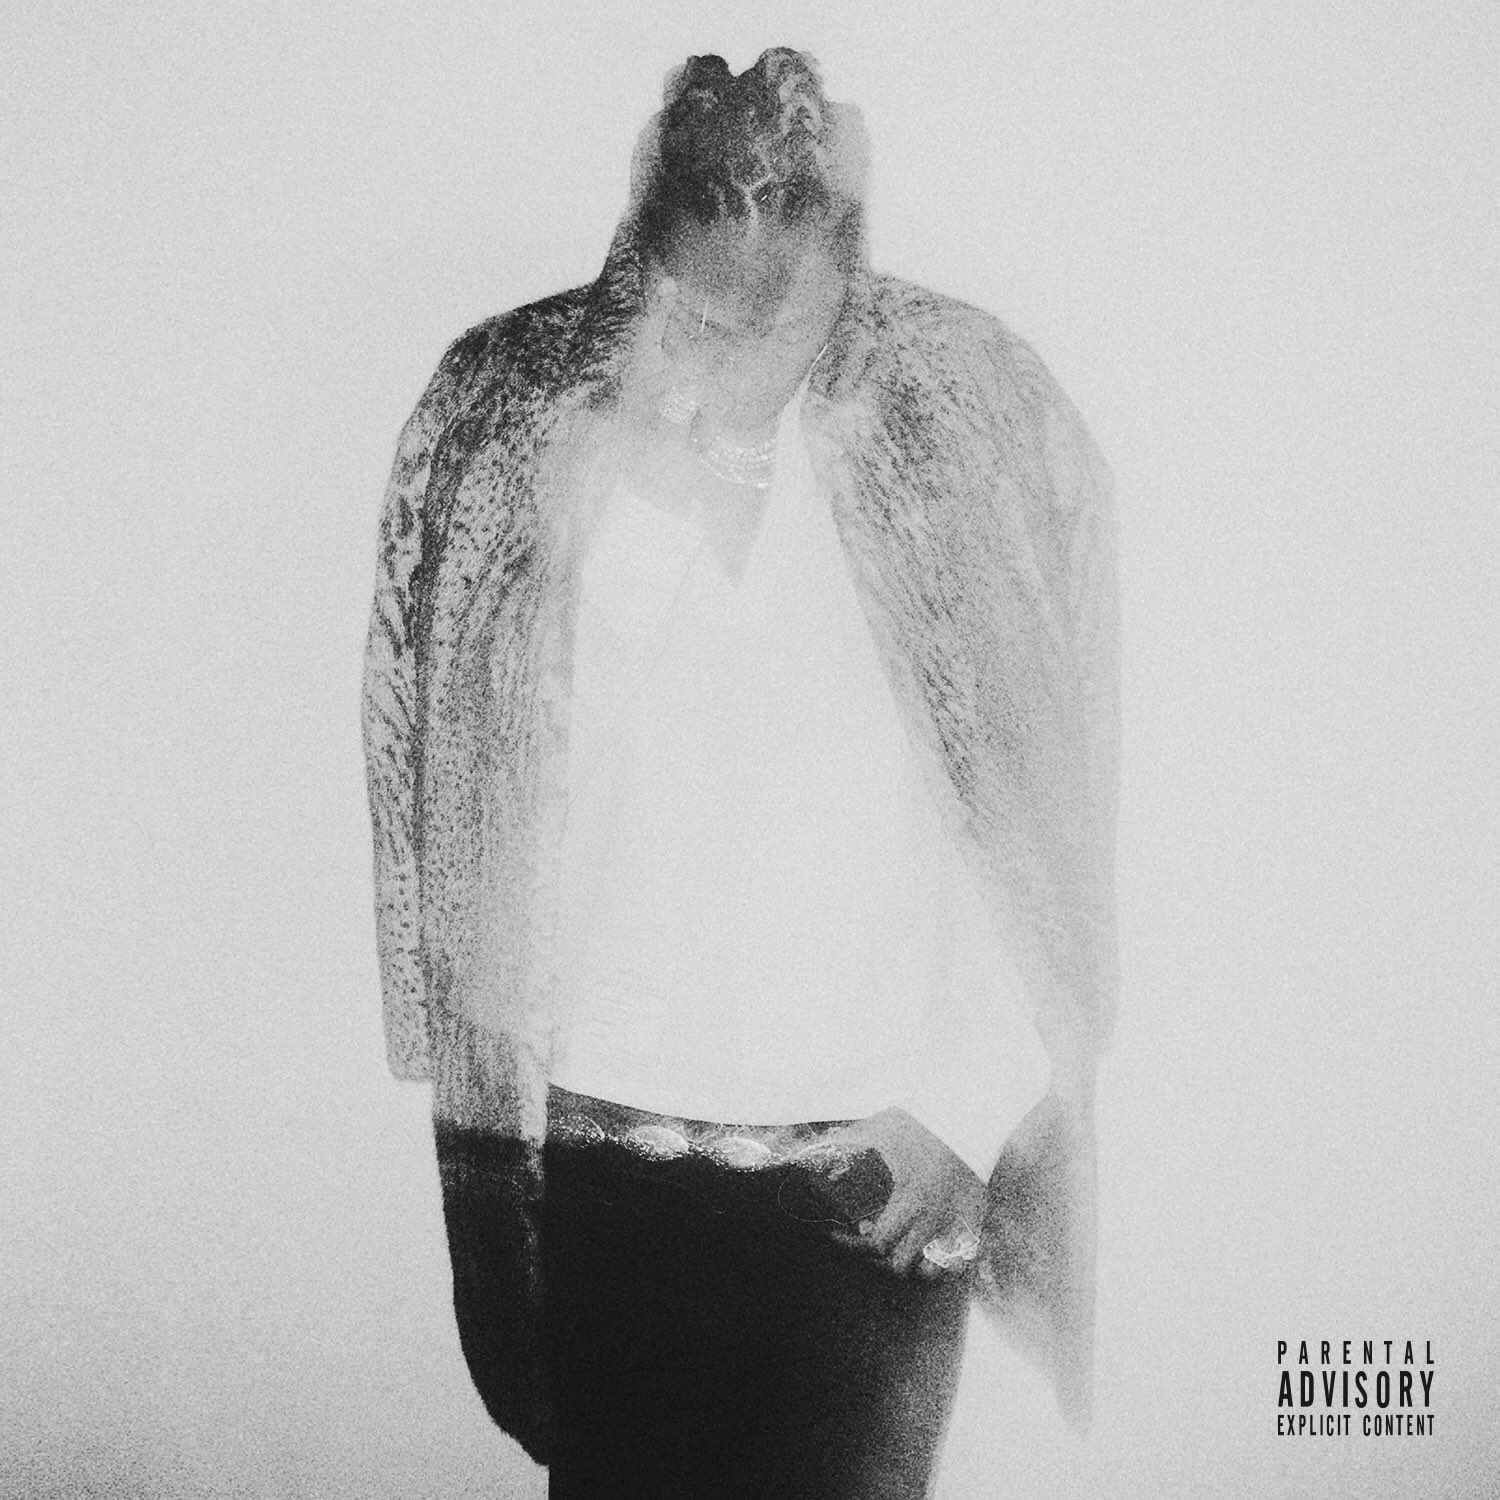 Ready for round 2? Pre-Order @Future's new album #HNDRXX now‼�� #beEPIC https://t.co/xvWs4CVCjU https://t.co/cKDFC5qE8a